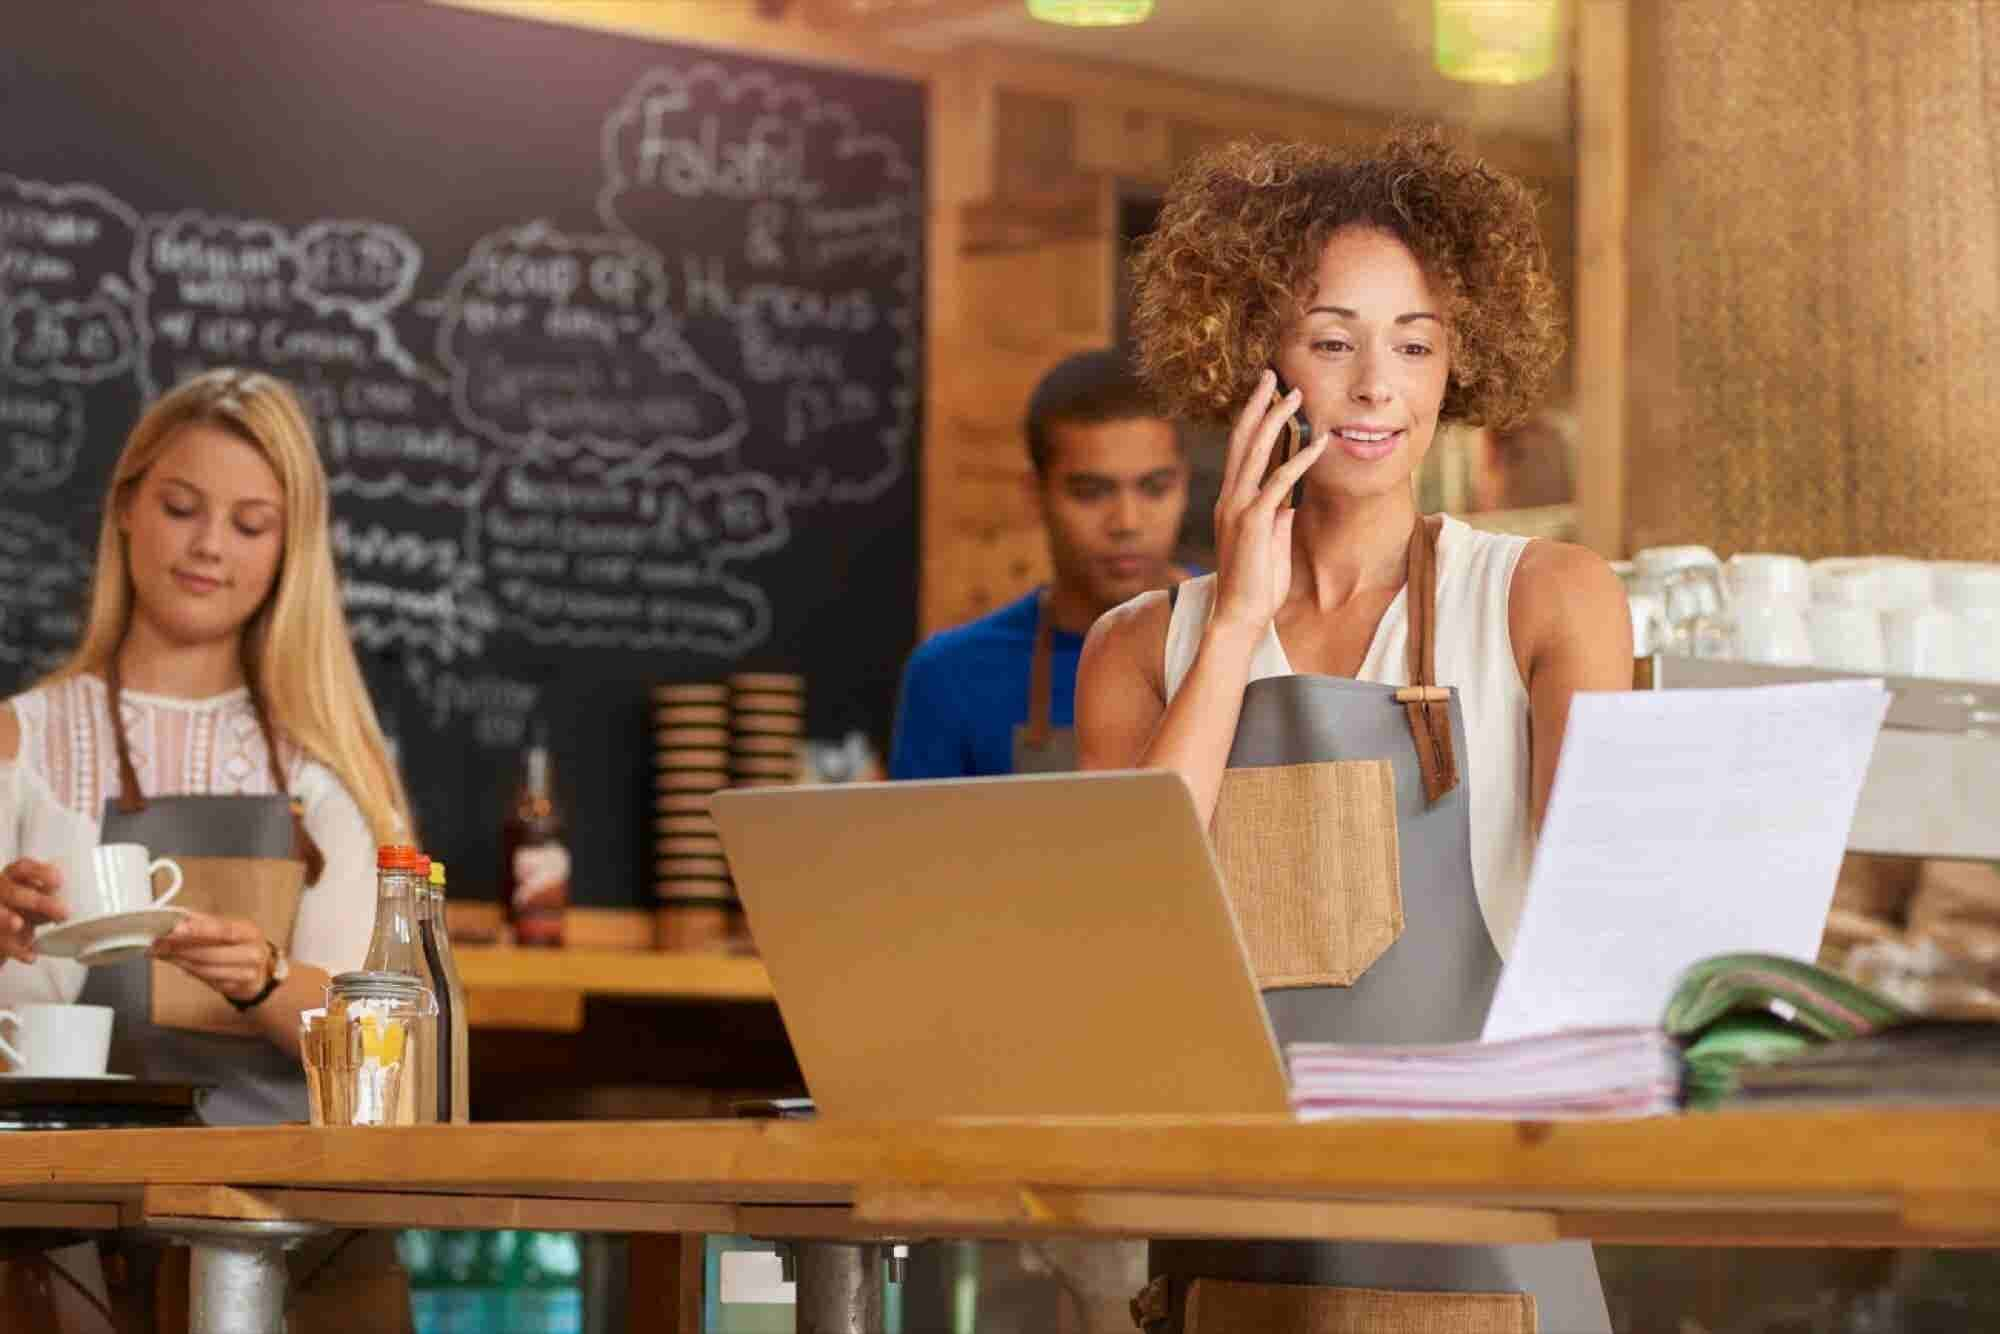 Restaurant Owners Reveal Their Success Secrets